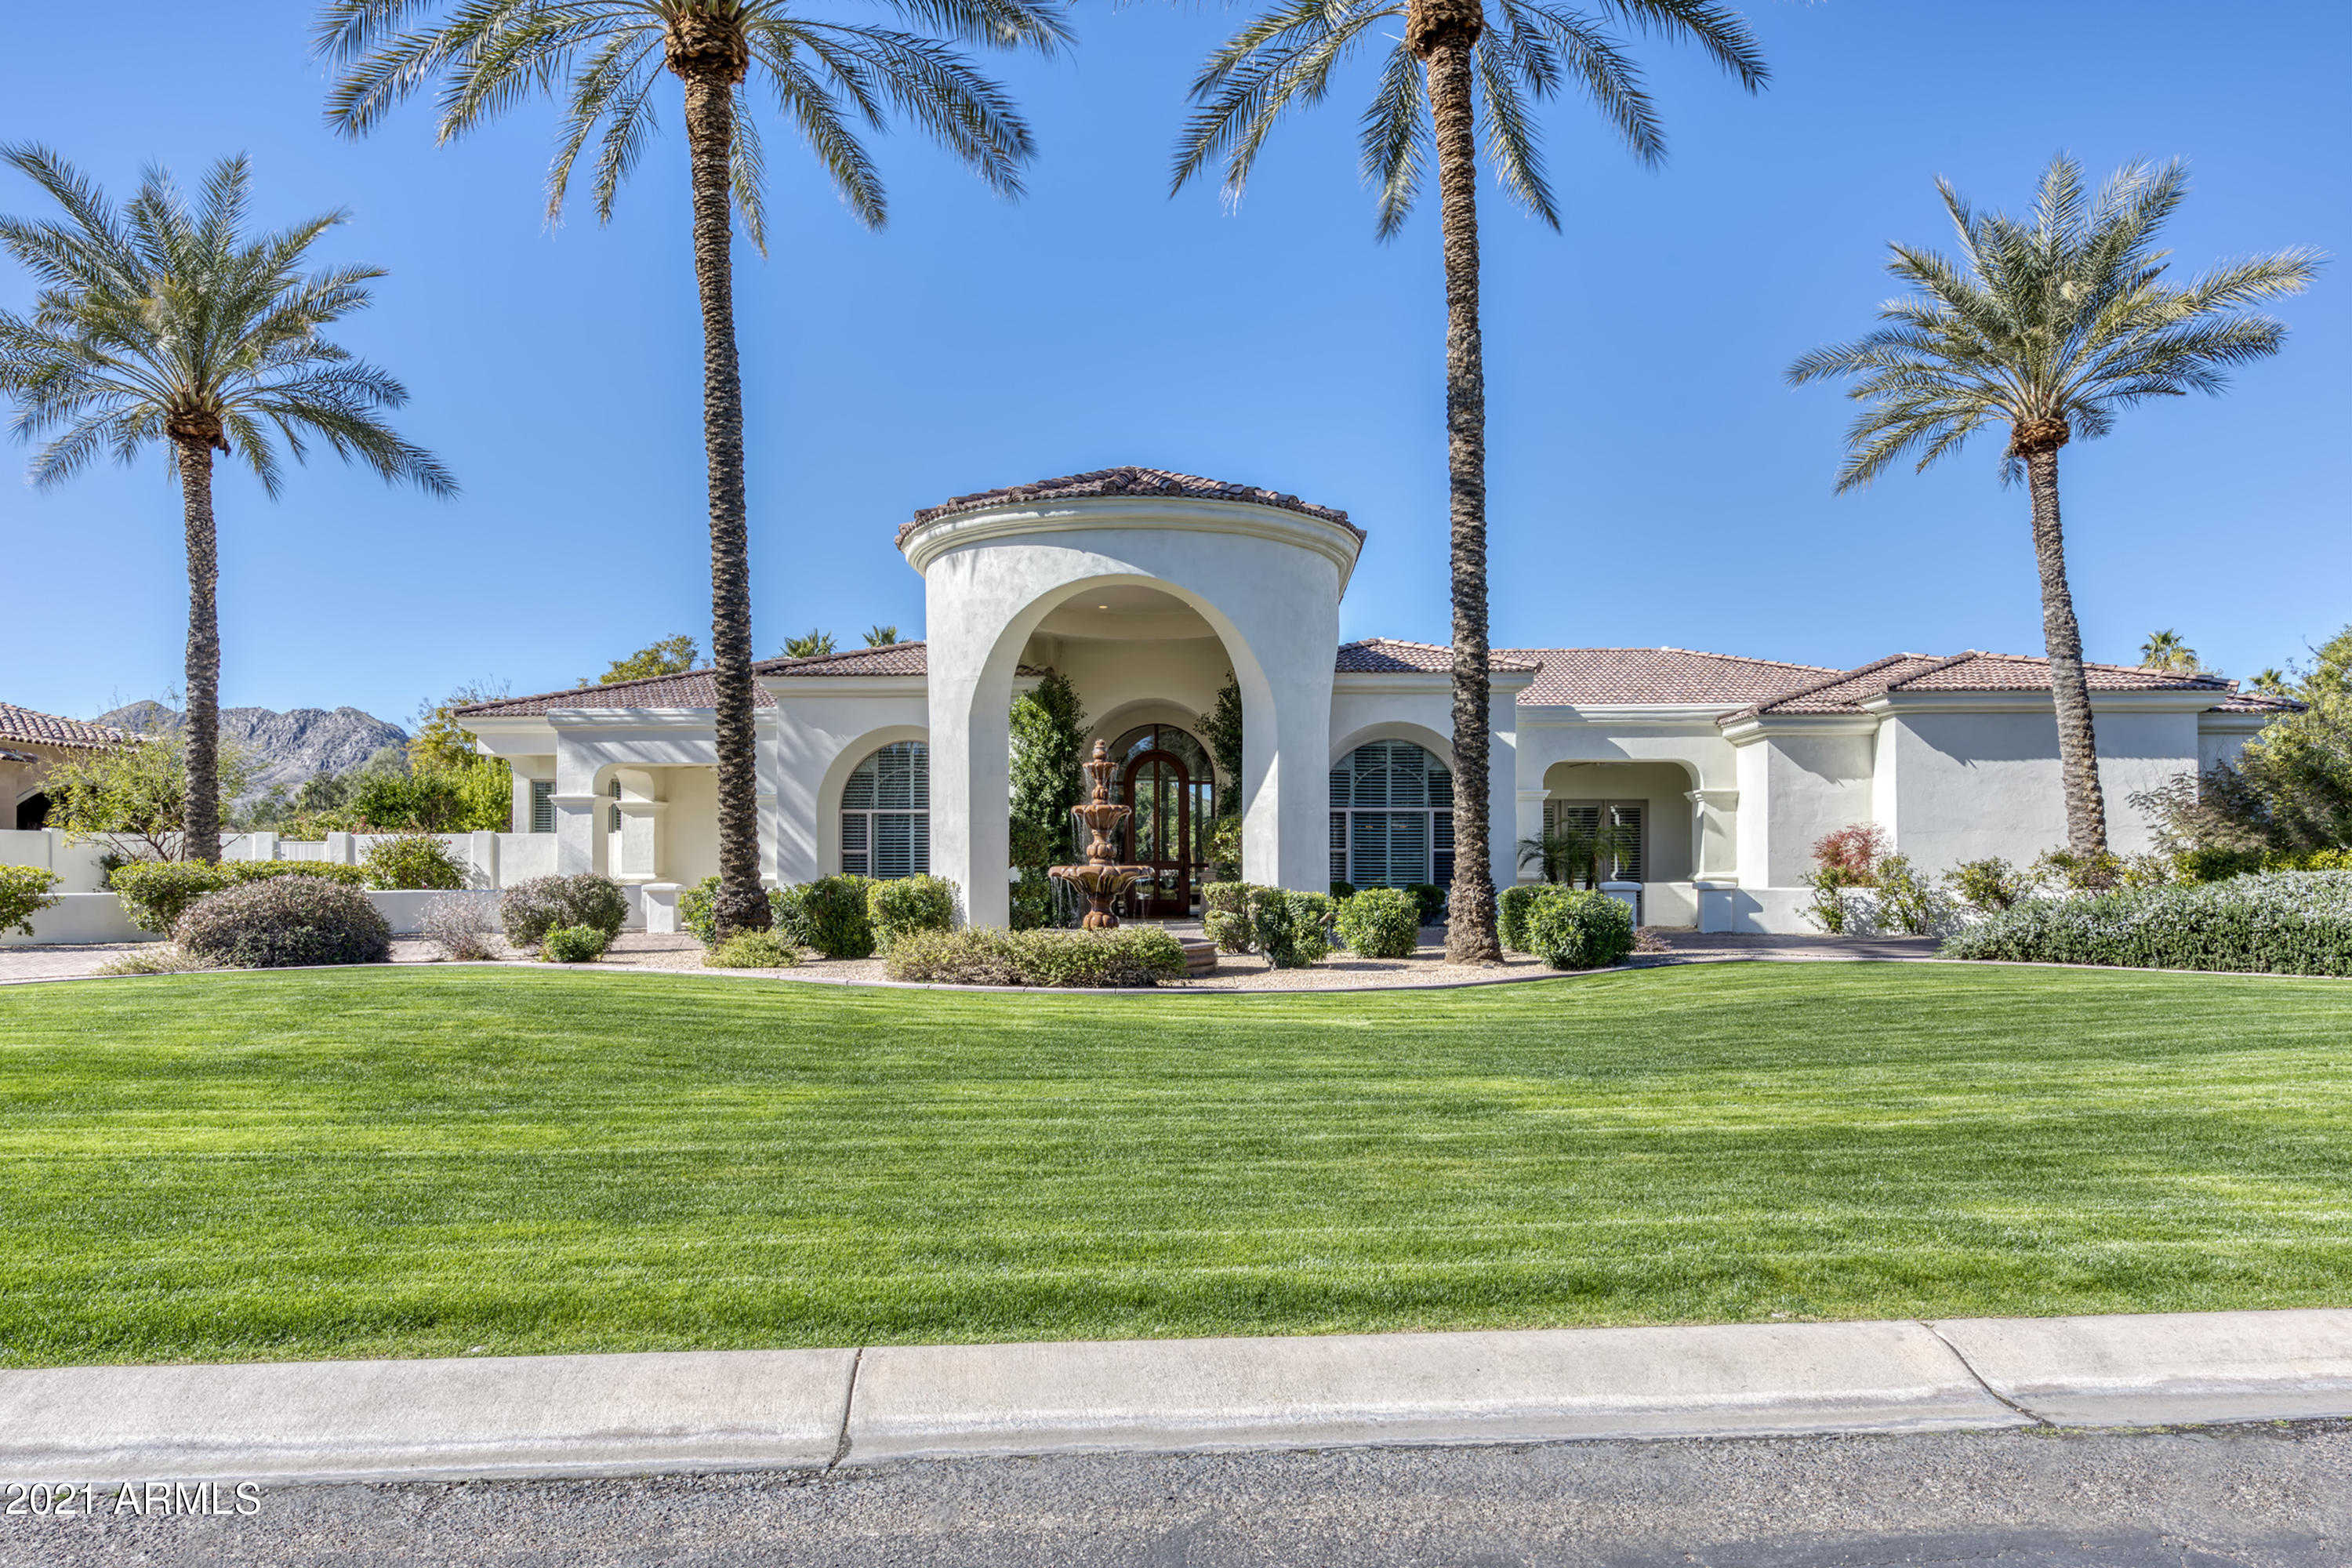 $3,395,000 - 6Br/7Ba - Home for Sale in Hidden Paradise, Paradise Valley